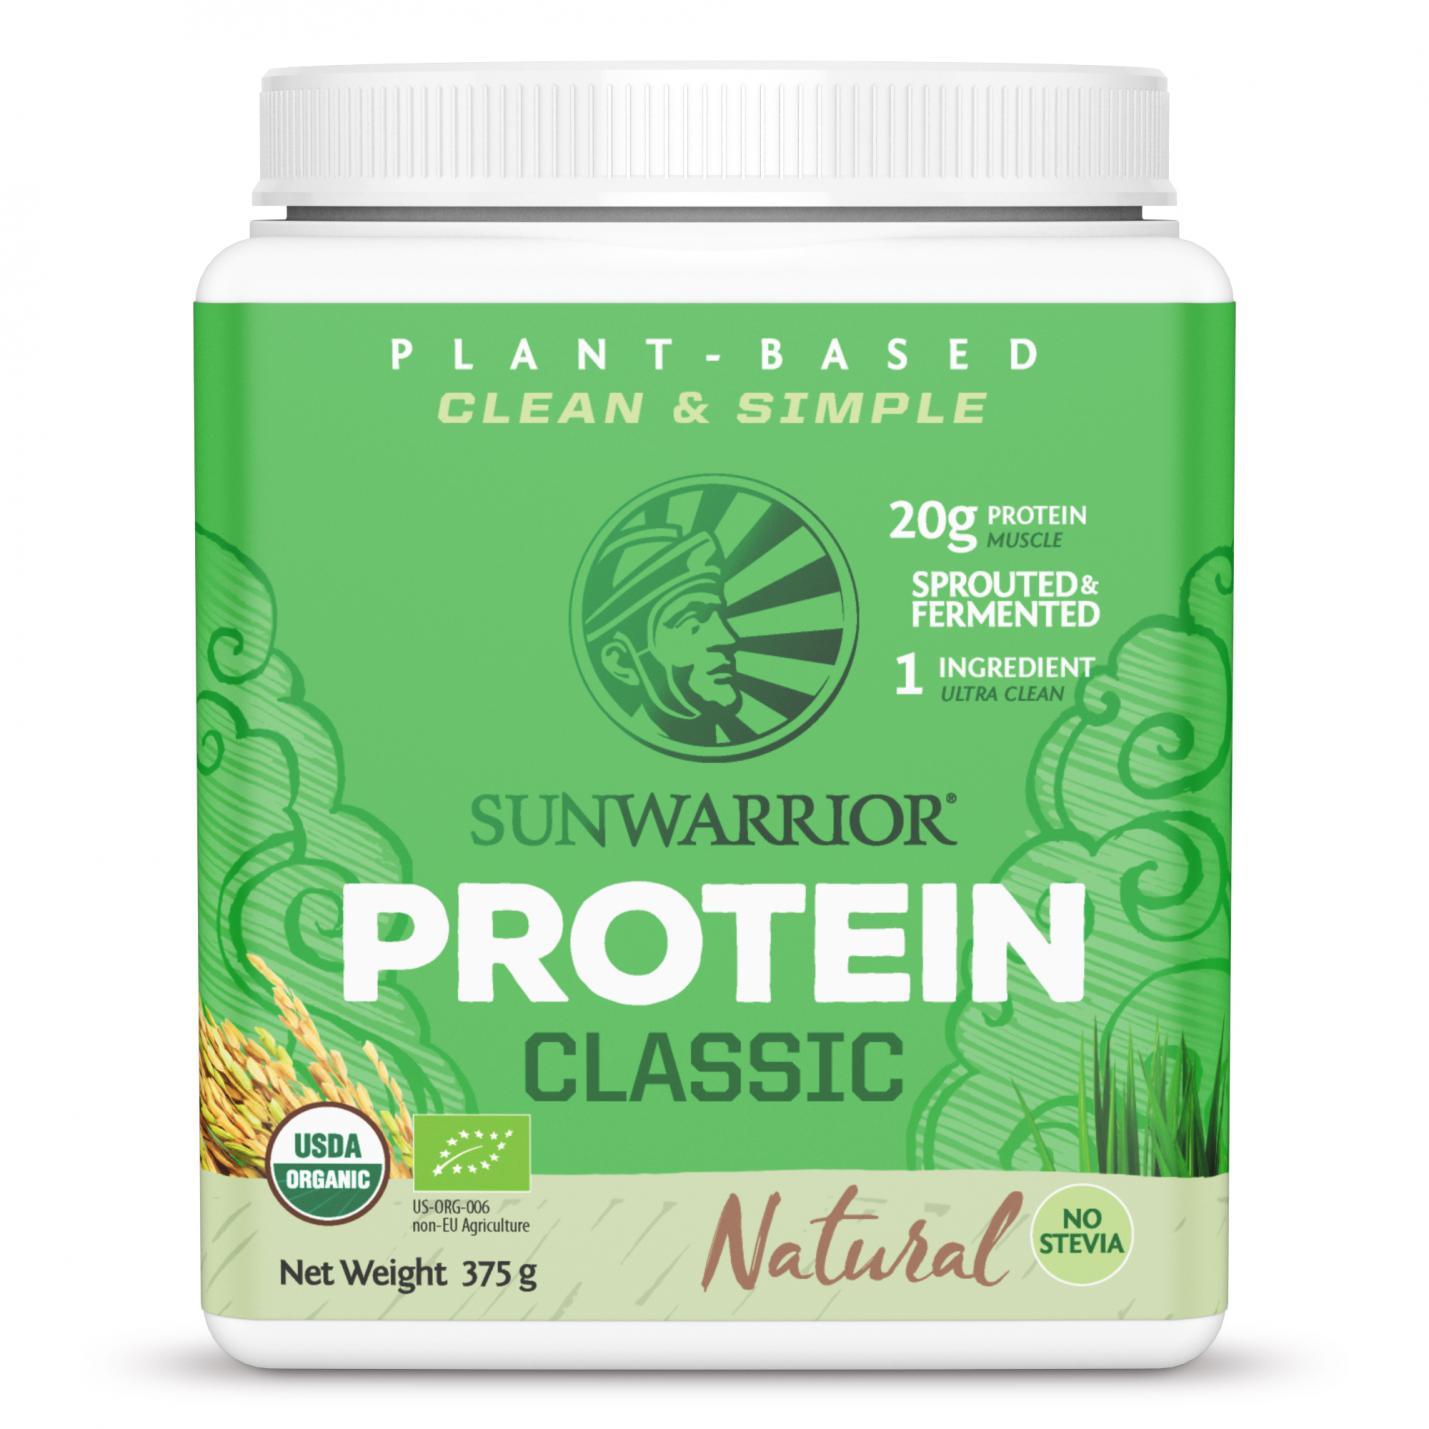 Protein Classic Natural 375g (Green Tub)